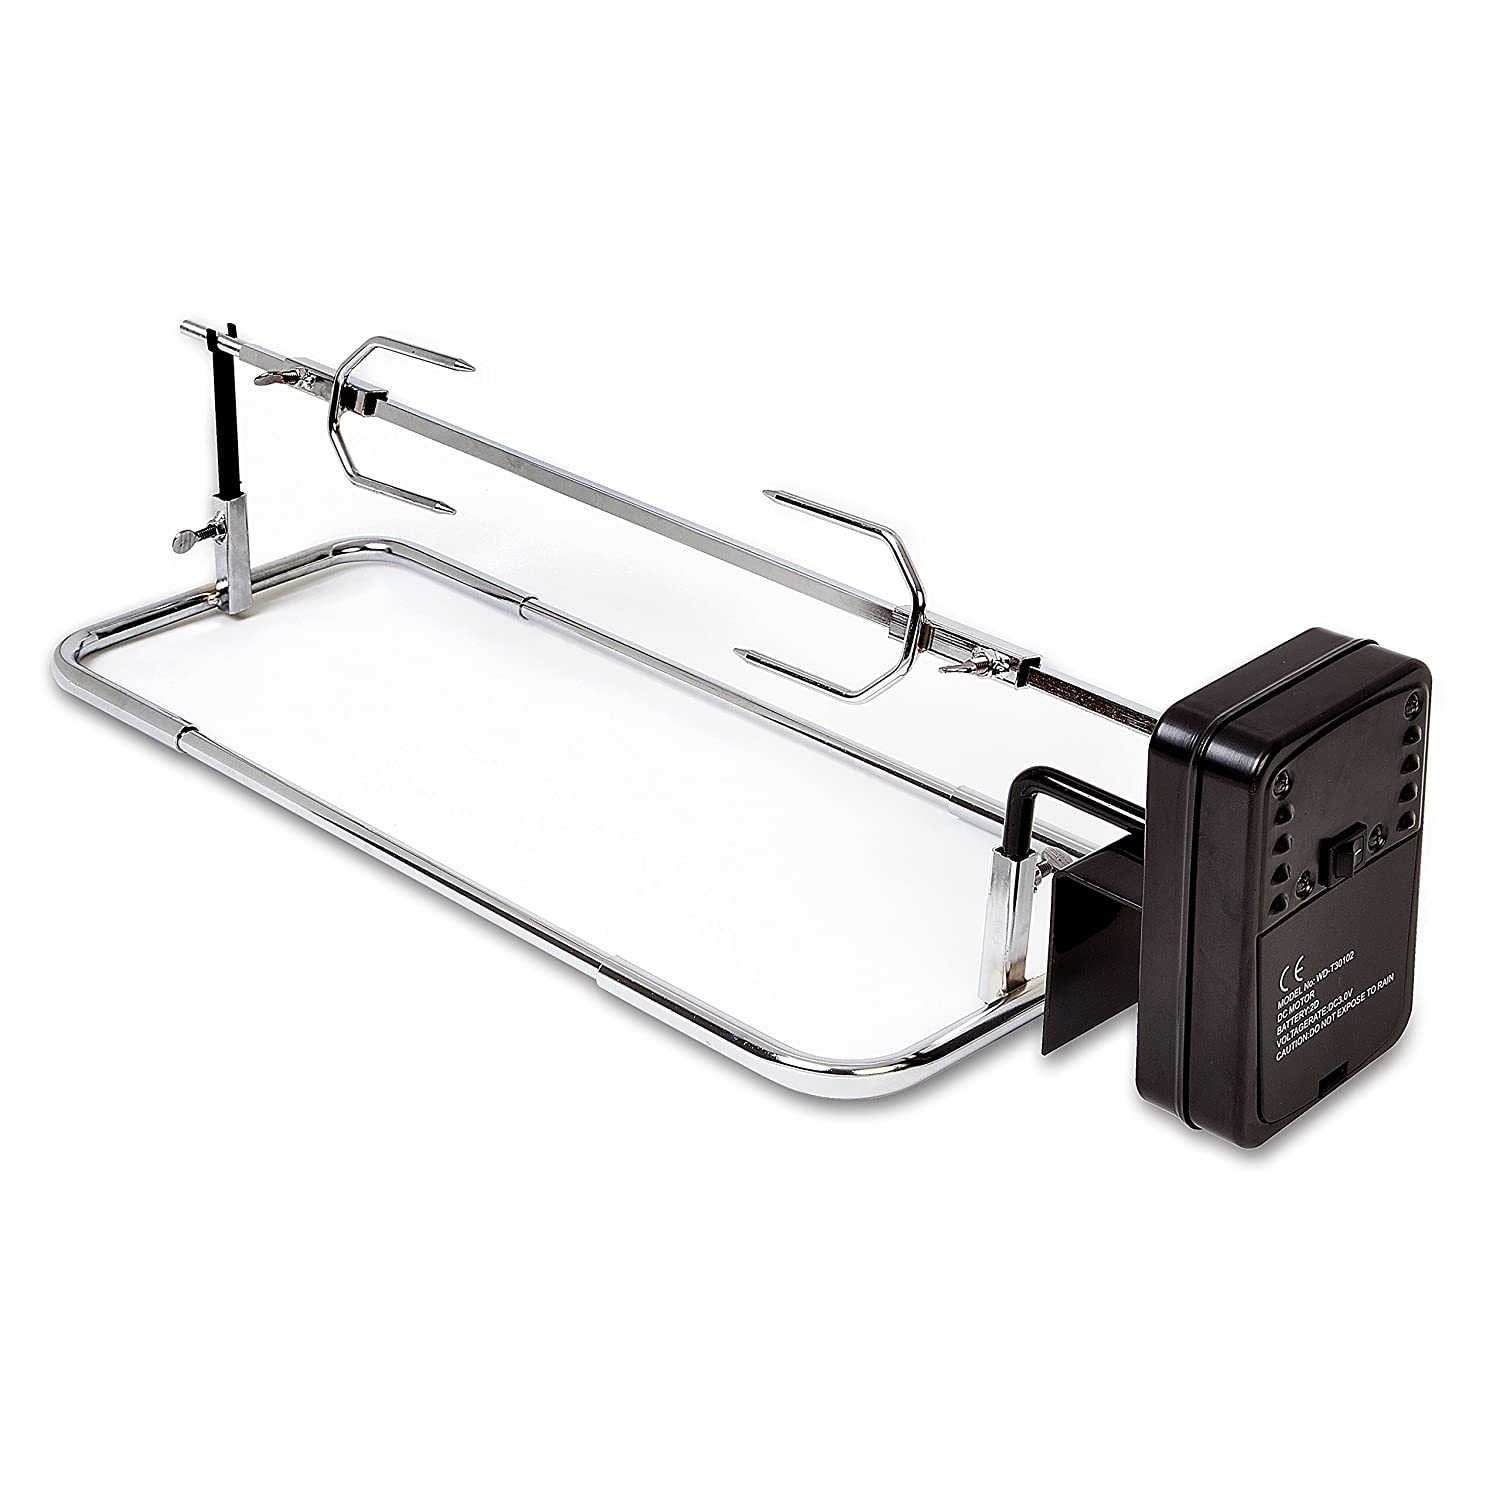 Lansdowne Use on any BBQ barbecue barbeque rotisserie with shish kebab attachment